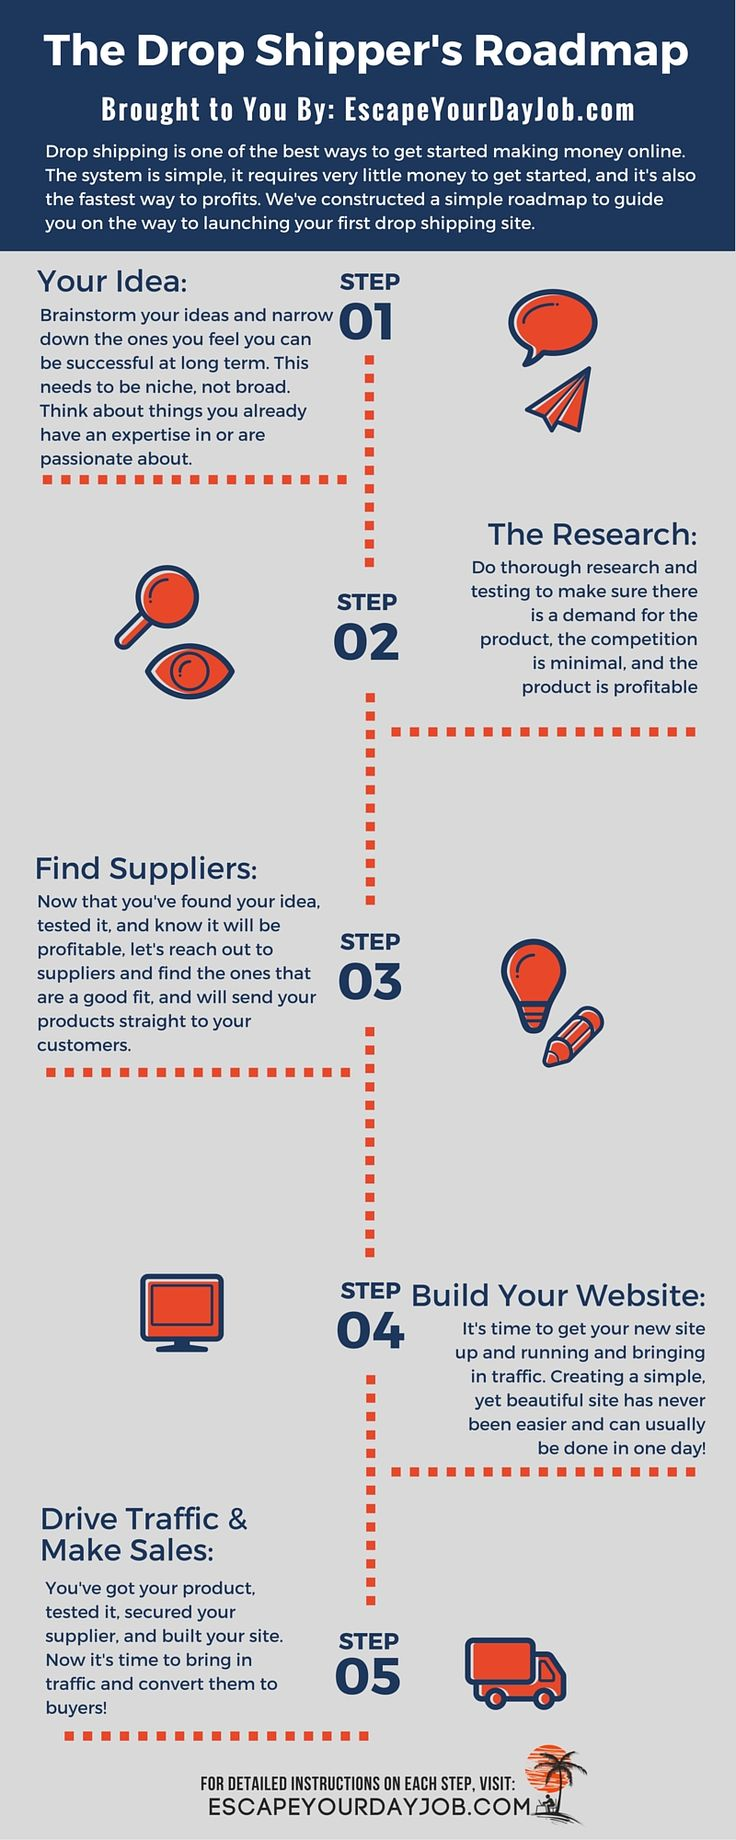 The Drop Shipper's Roadmap: I created this simple 5 step guide that will get you started on the path to your first profitable drop ship site. Check it!